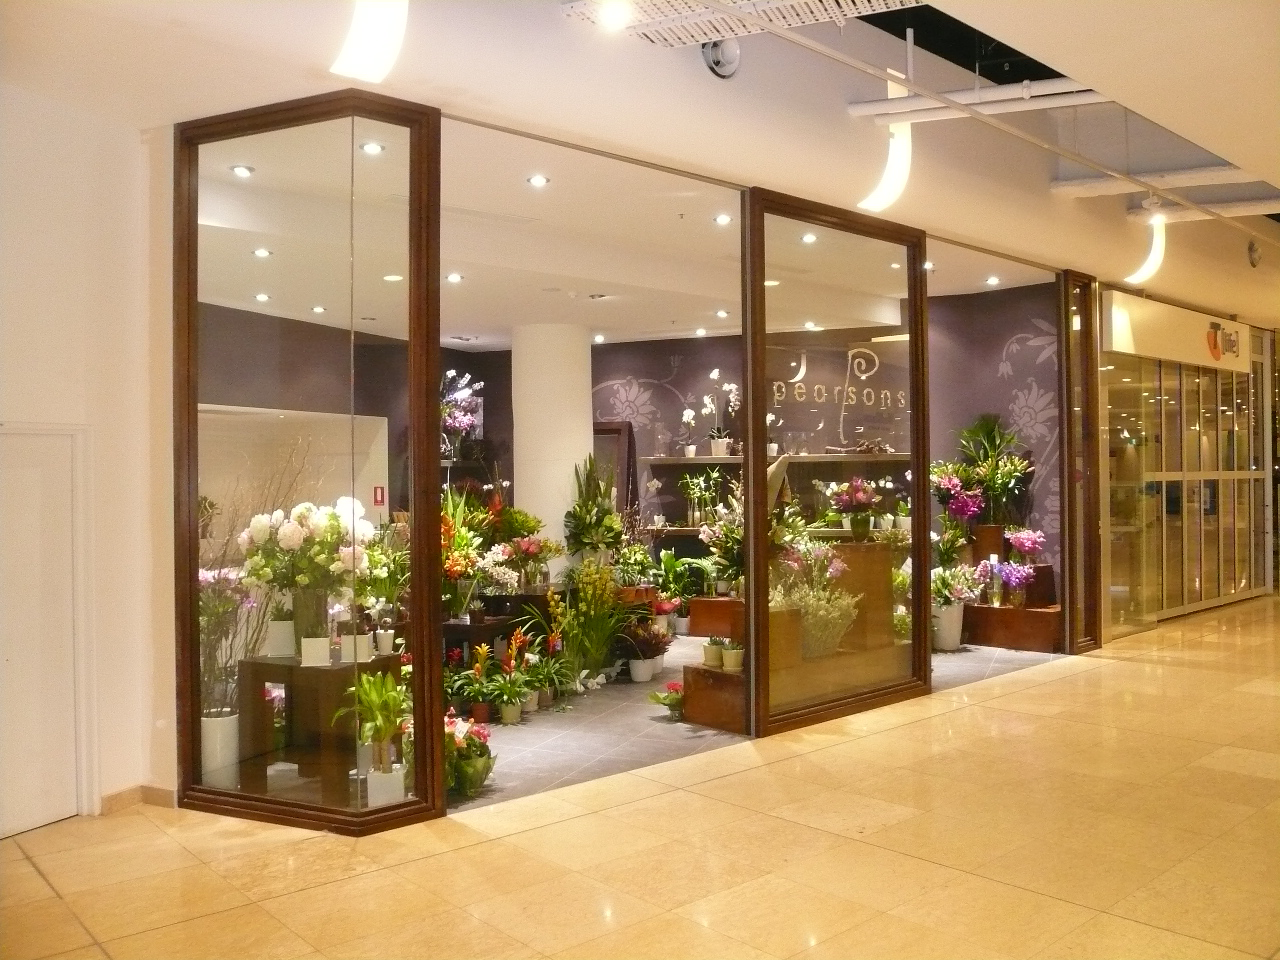 Pearsons Florist, Chatswood